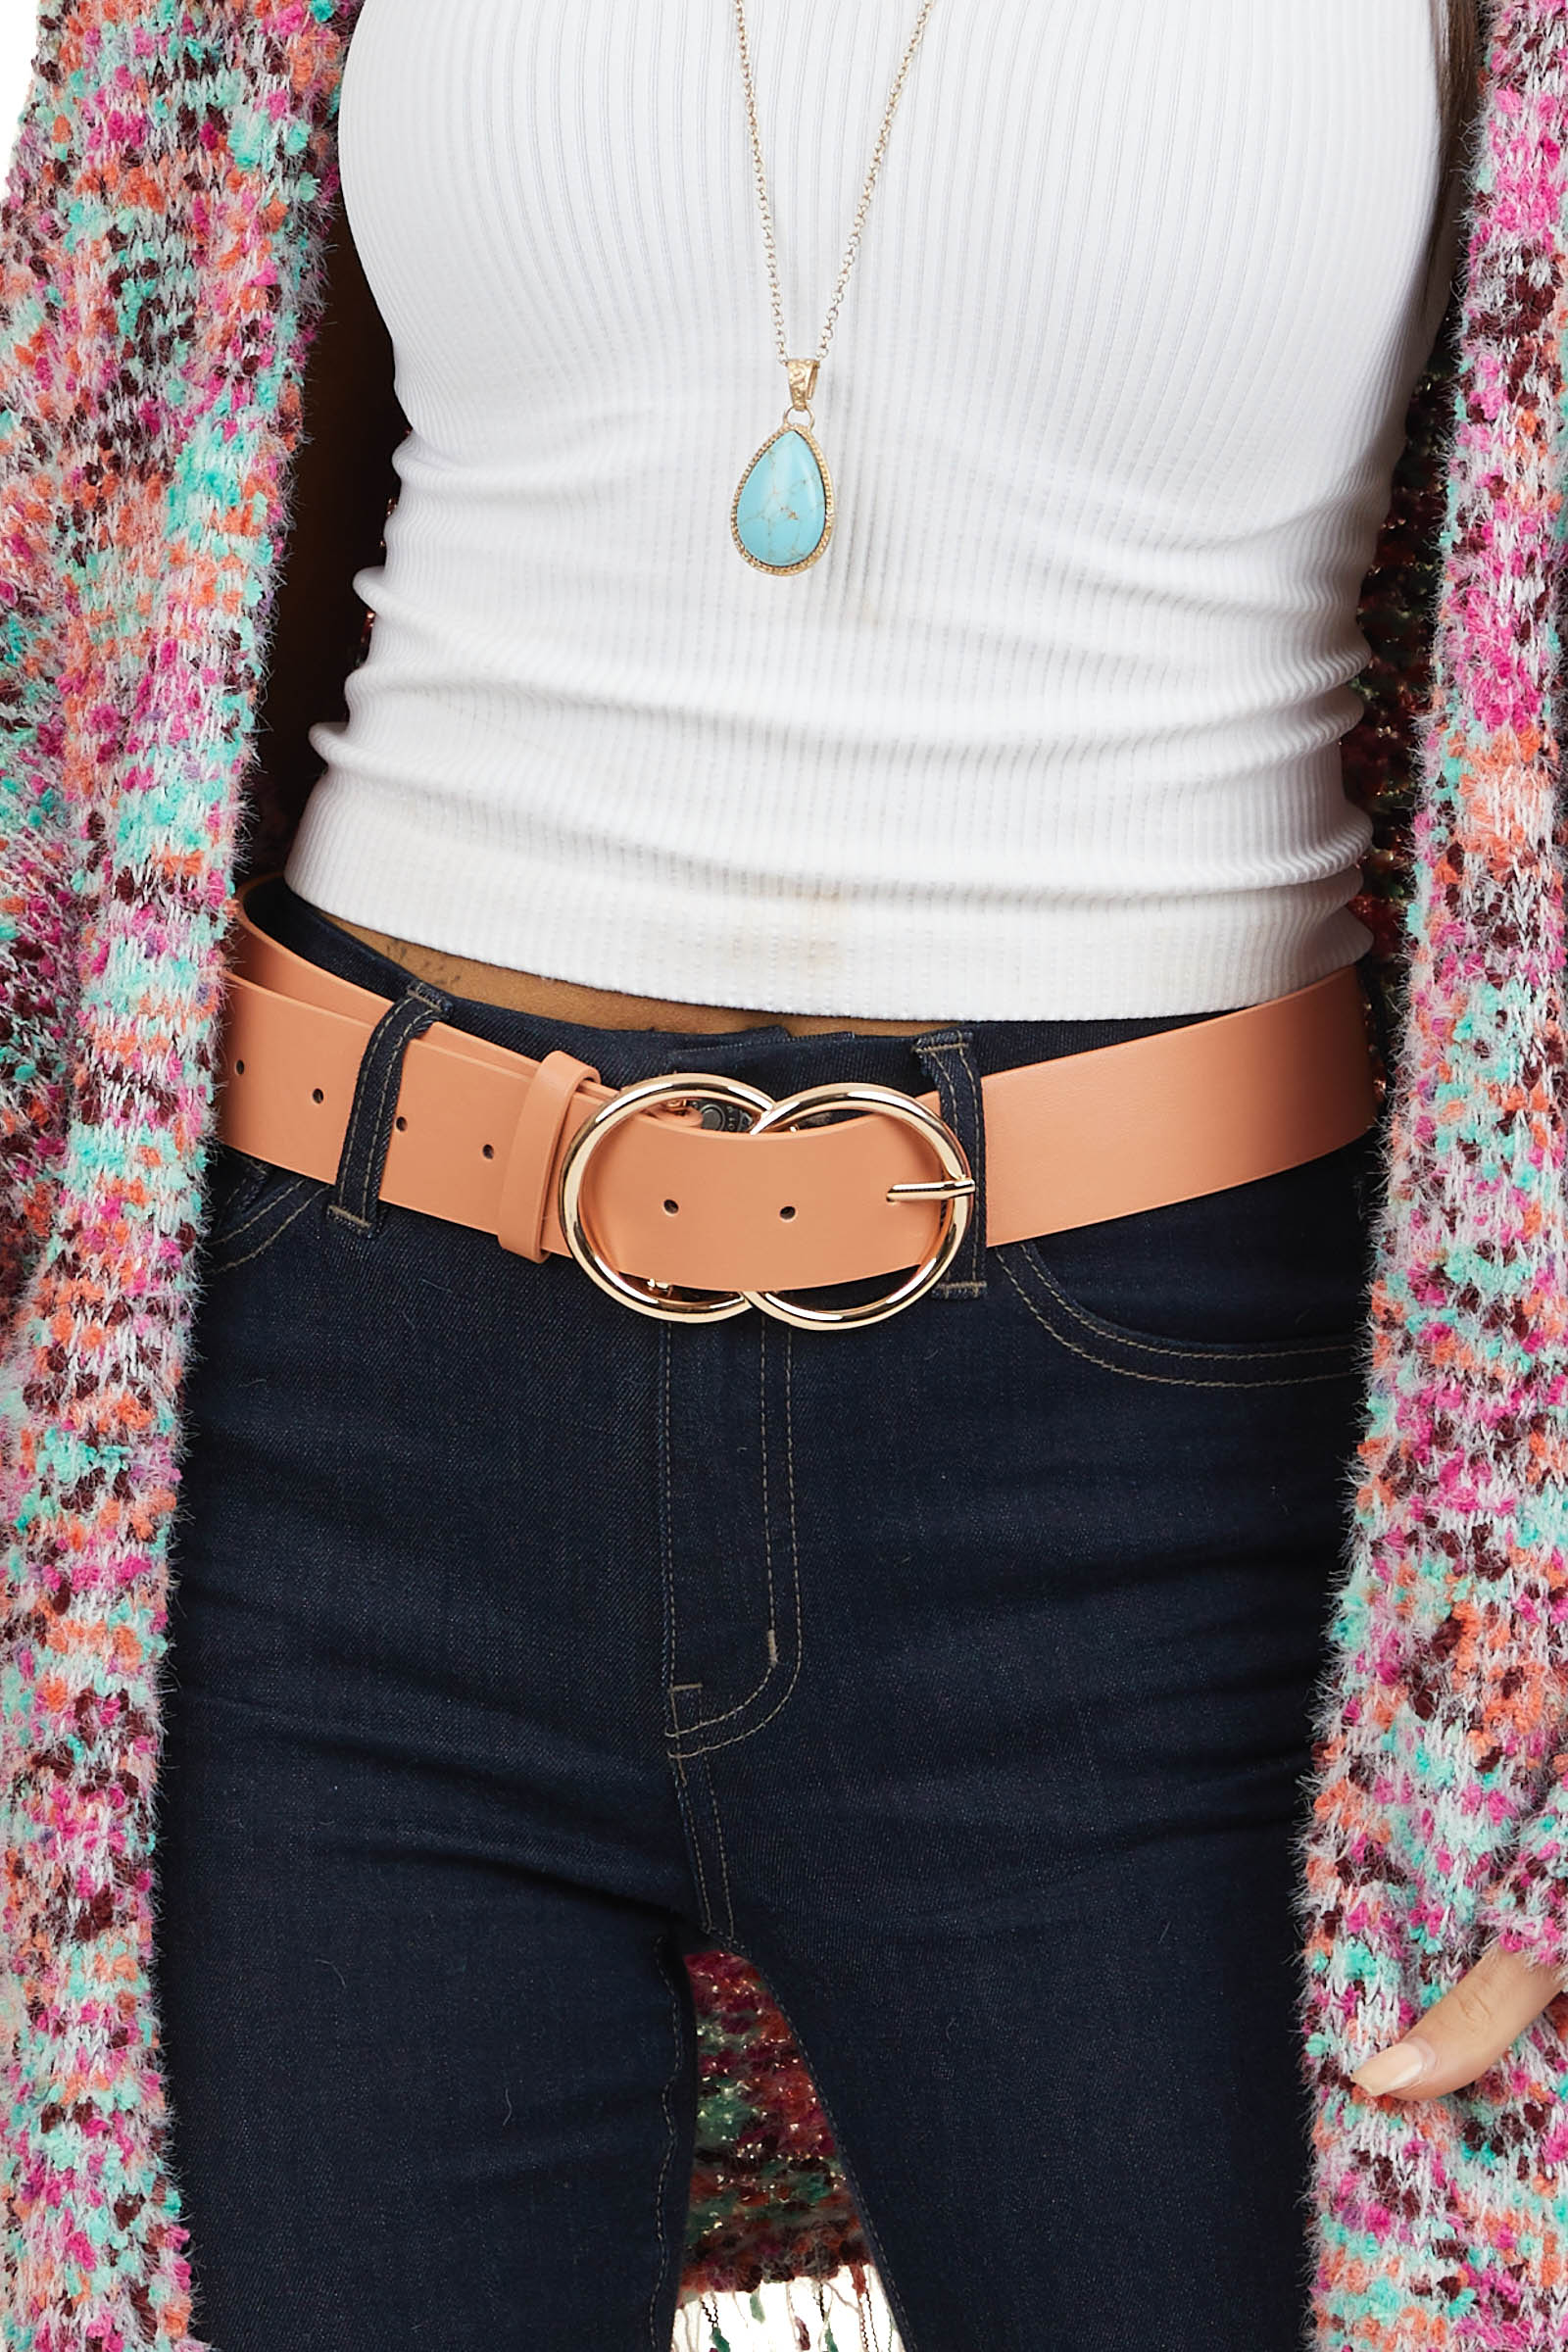 Salmon Faux Leather Belt with Gold Double Ring Buckle